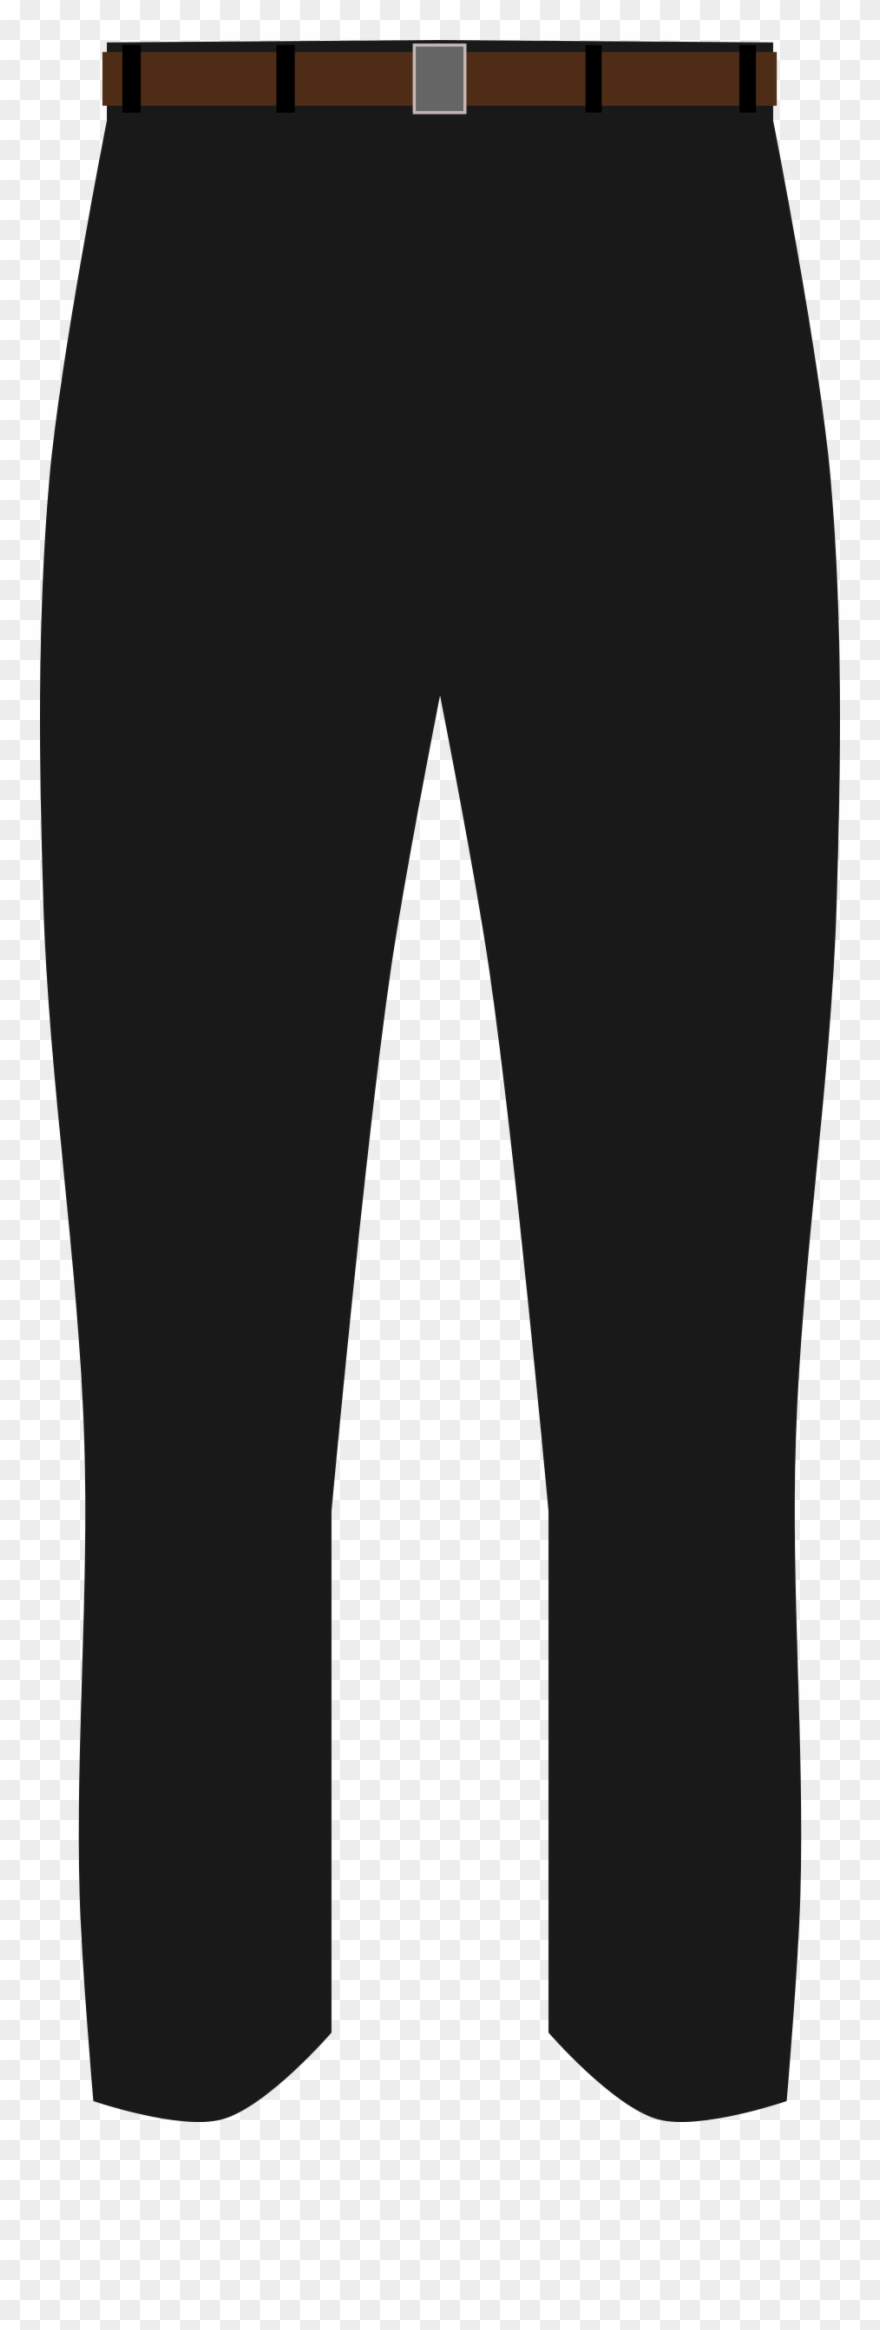 Clipart black pants clipart free Images Of Black Sweatpants Spacehero Pants Clip - Black Pants ... clipart free